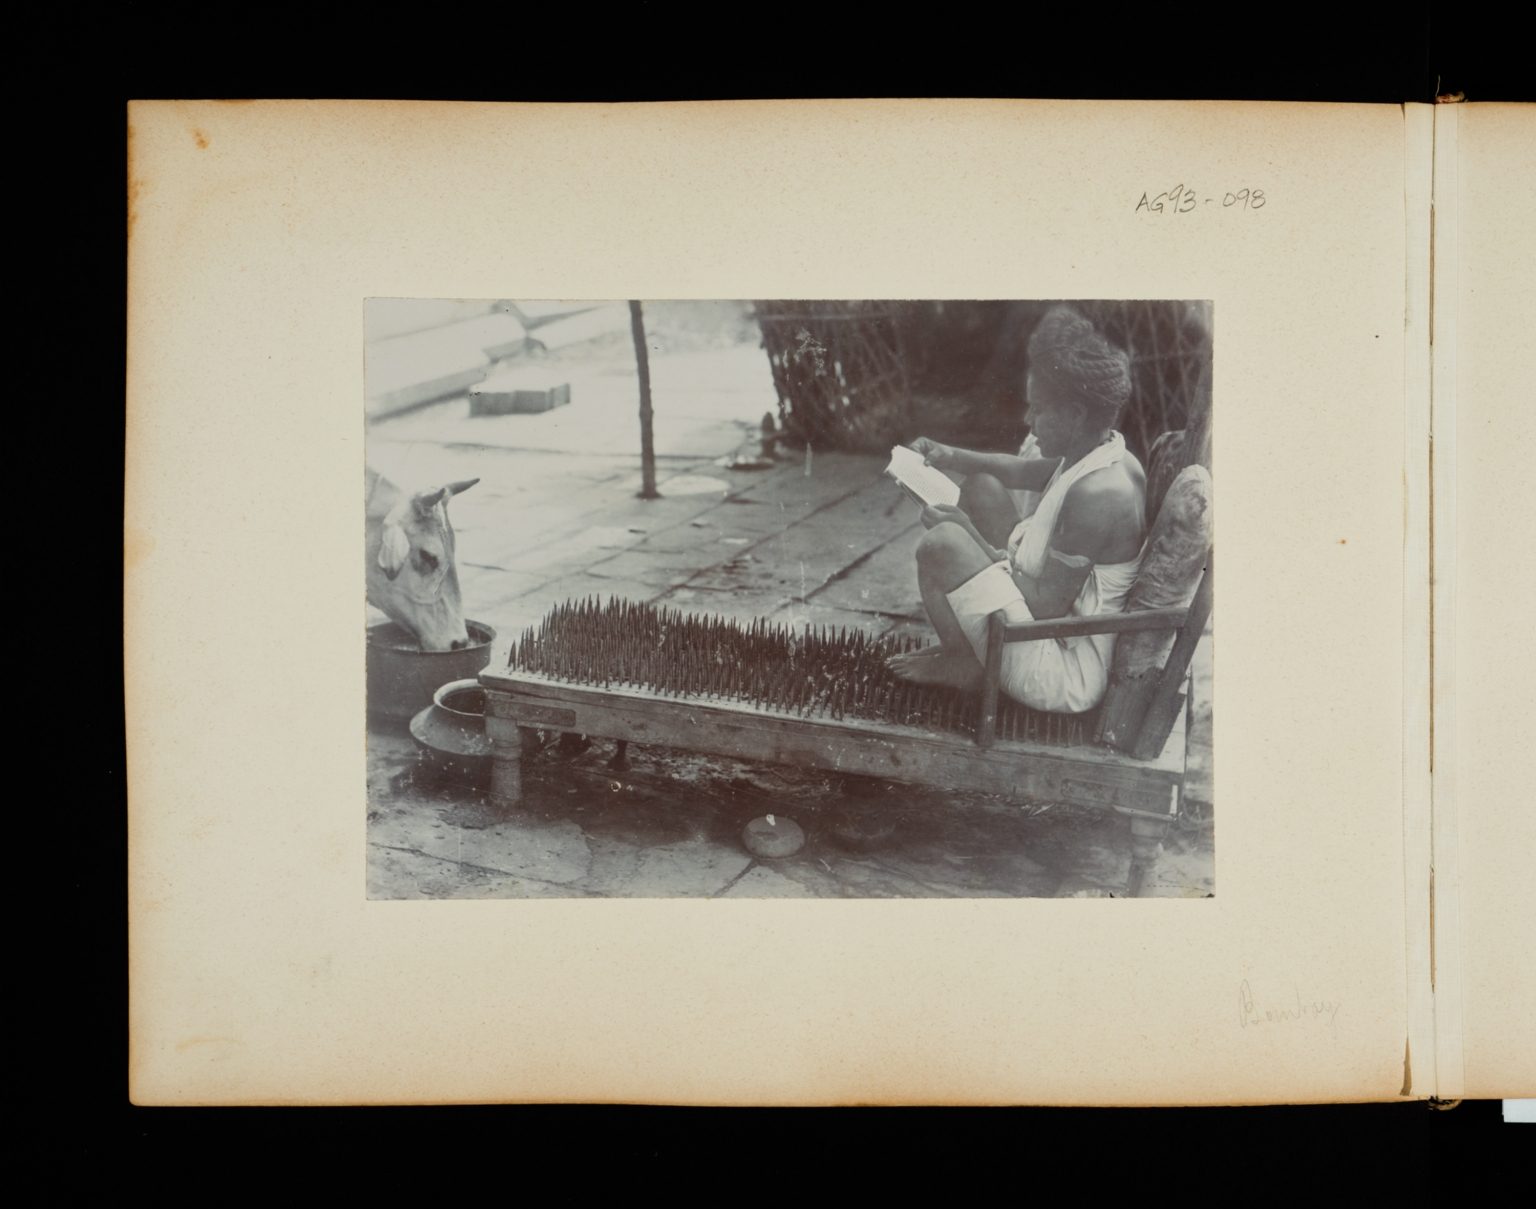 Fakir sitting on a bed of nails in Bombay, India.